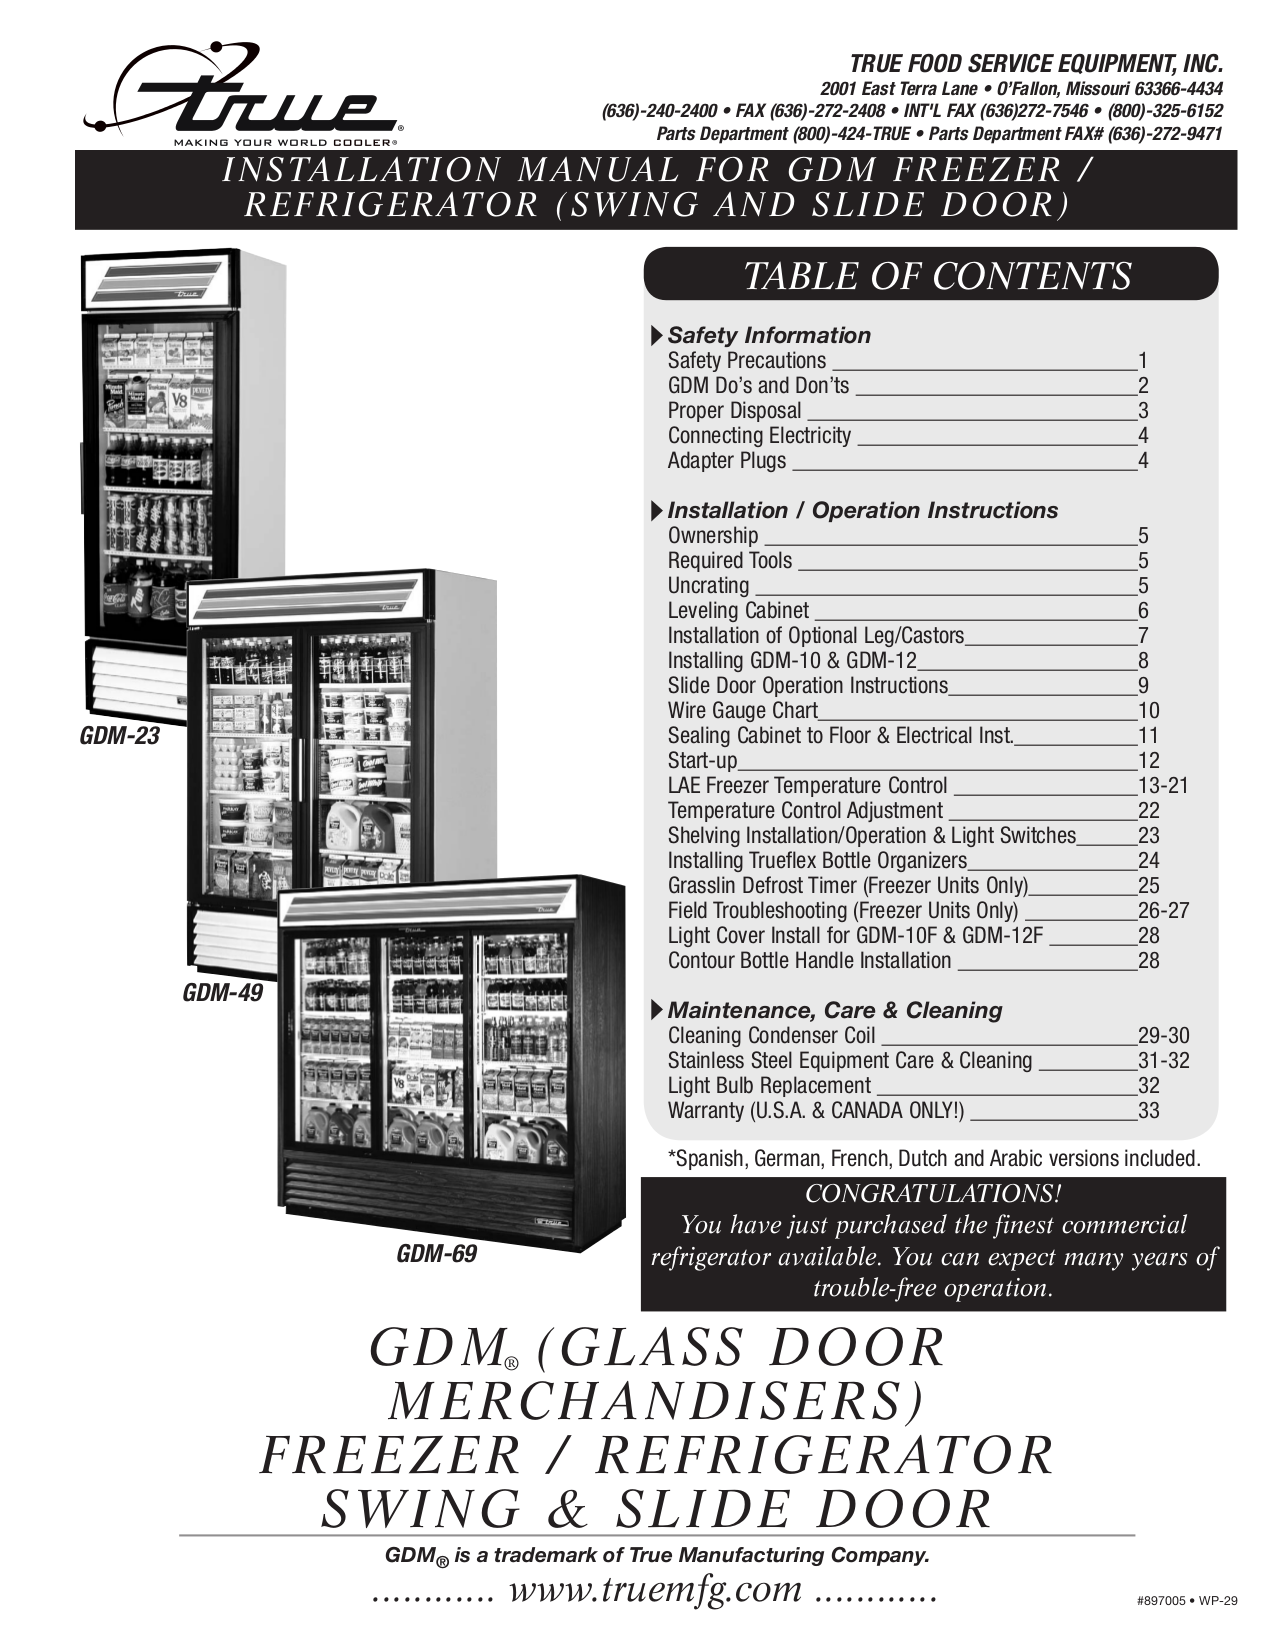 GDM Freezer_Refrigerator.pdf 0 download free pdf for true gdm 26 refrigerator manual true gdm 23 wiring diagram at bakdesigns.co